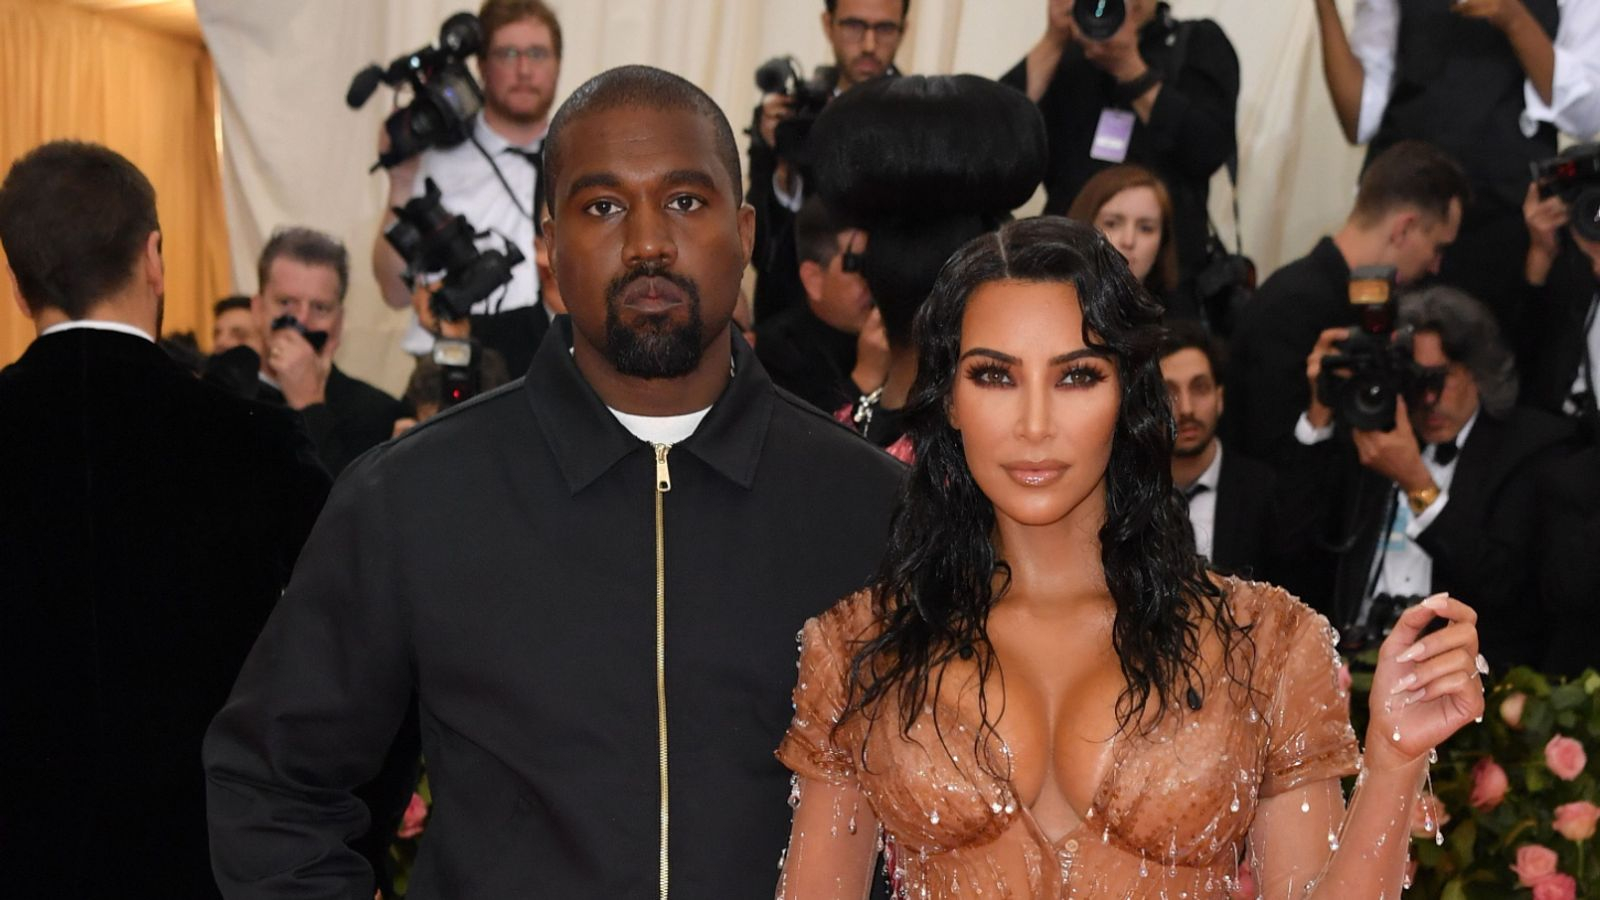 """Kim Kardashian and Kanye West arrive for the 2019 Met Gala at the Metropolitan Museum of Art on May 6, 2019, in New York. - The Gala raises money for the Metropolitan Museum of Arts Costume Institute. The Gala's 2019 theme is Camp: Notes on Fashion"""" inspired by Susan Sontag's 1964 essay """"Notes on Camp"""". (Photo by ANGELA WEISS / AFP) (Photo credit should read ANGELA WEISS/AFP via Getty Images)"""